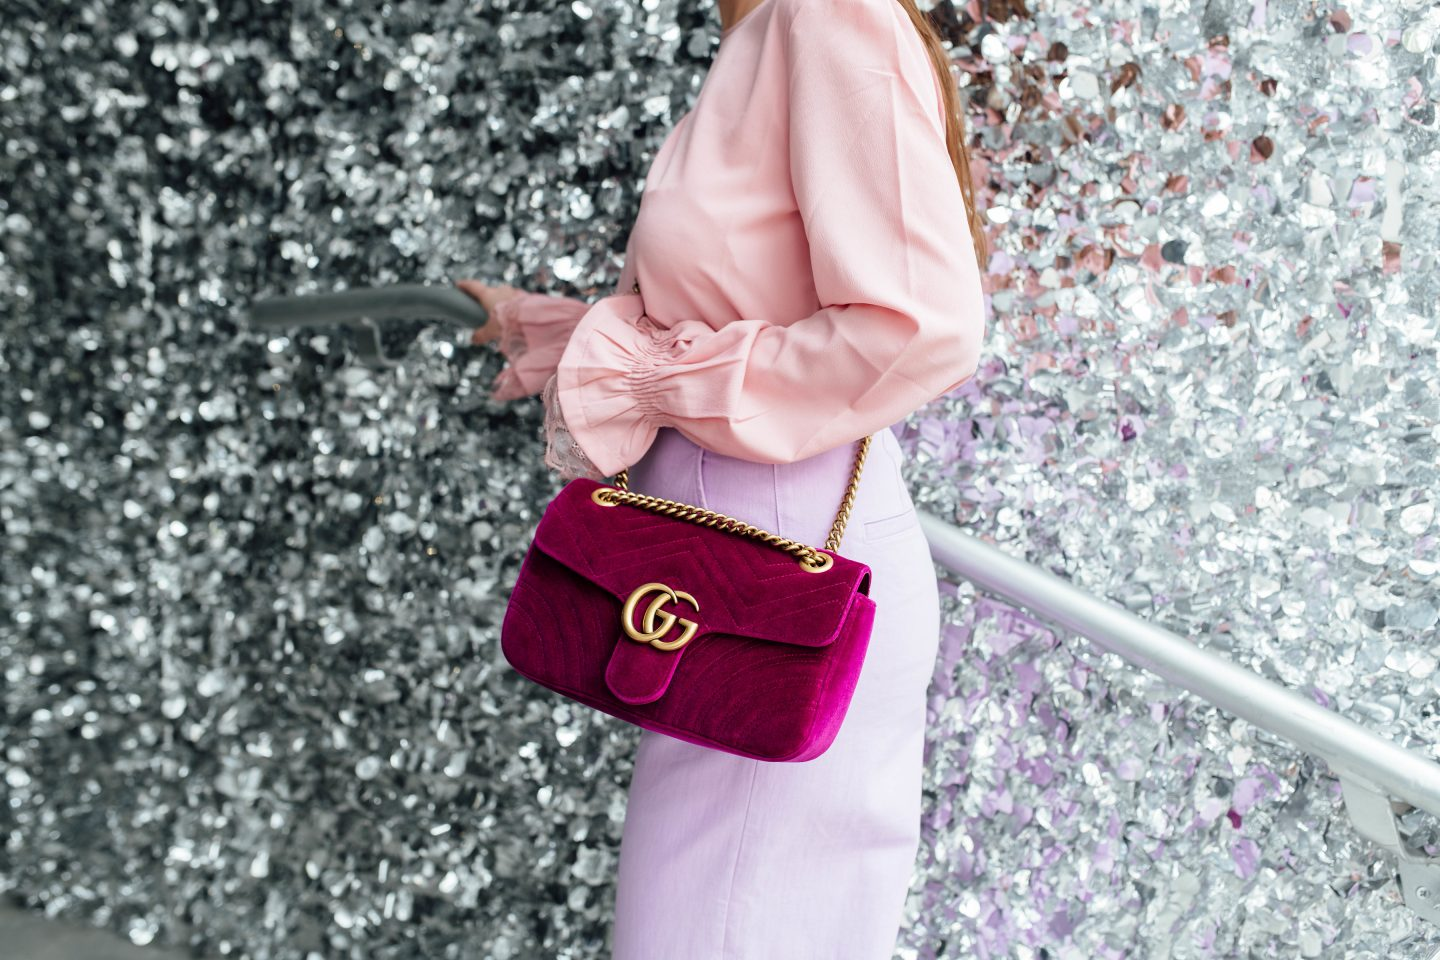 5 SIGNS YOU NEED GLAMOUR IN YOUR LIFE